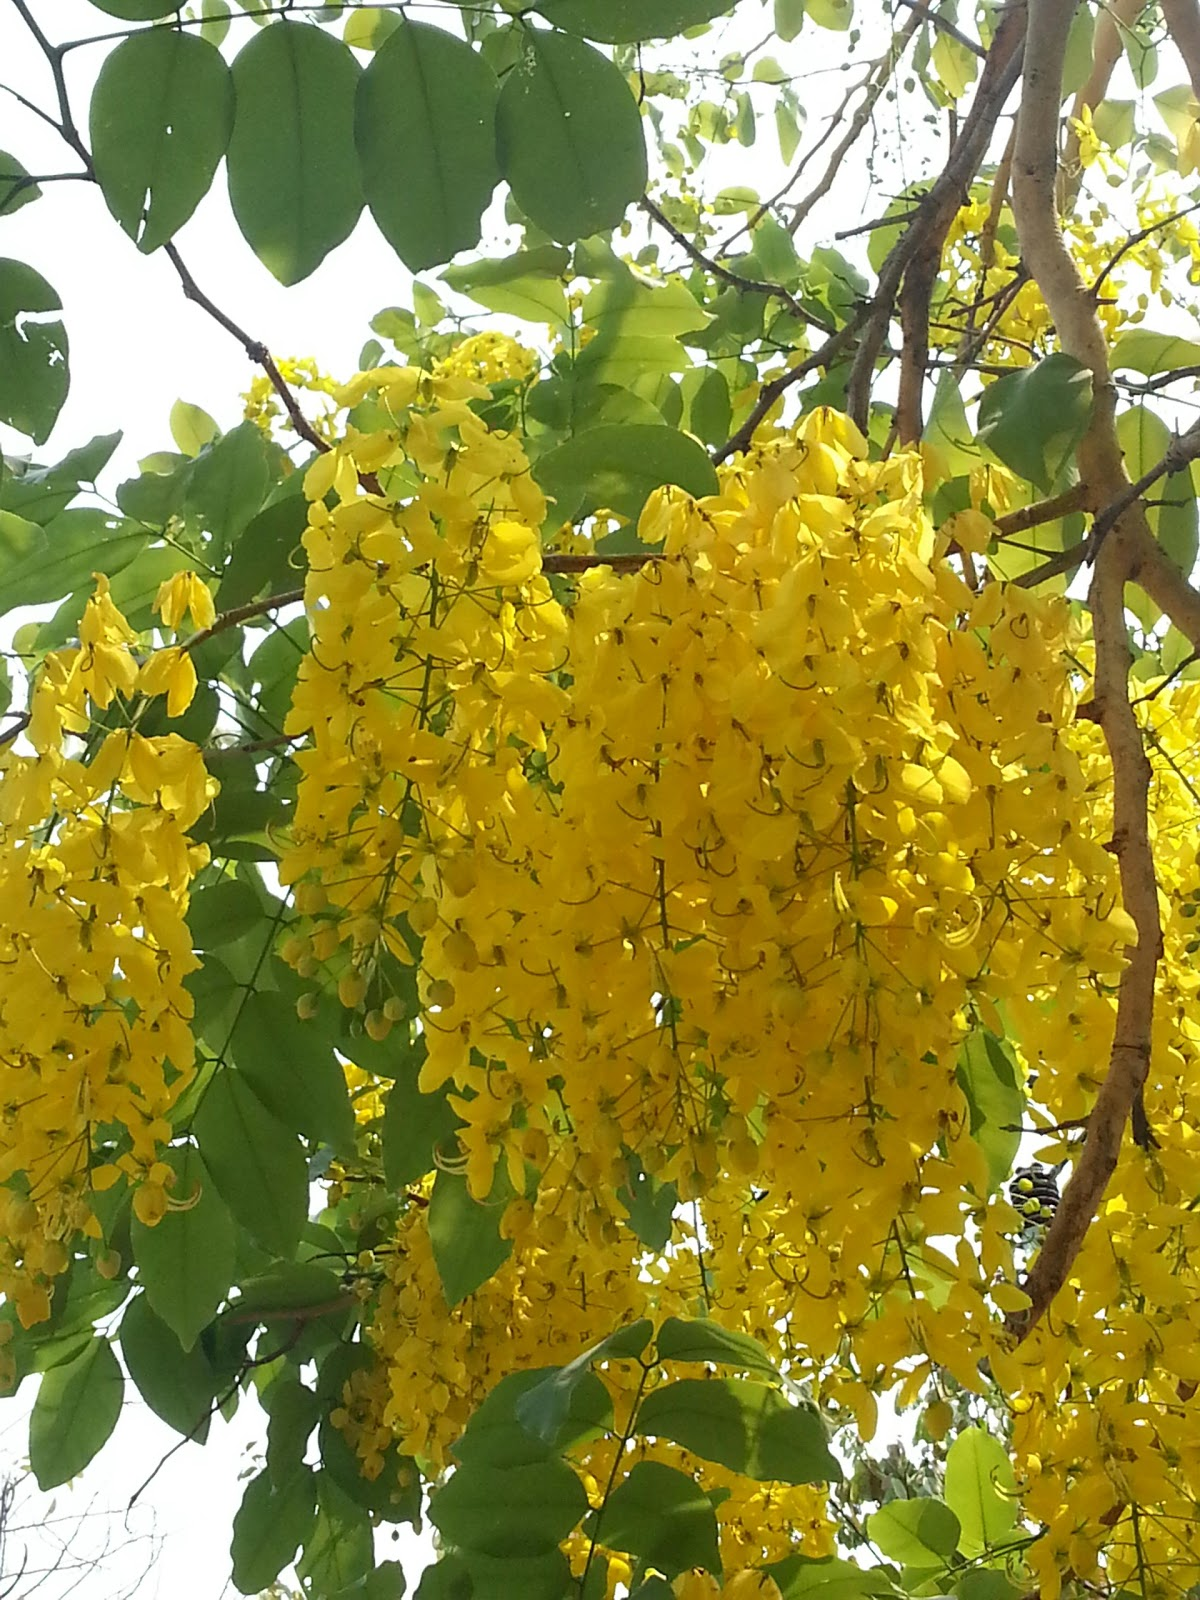 Travels in laos and isaan when the golden shower tree blooms when the golden shower tree blooms songkran is around the corner mightylinksfo